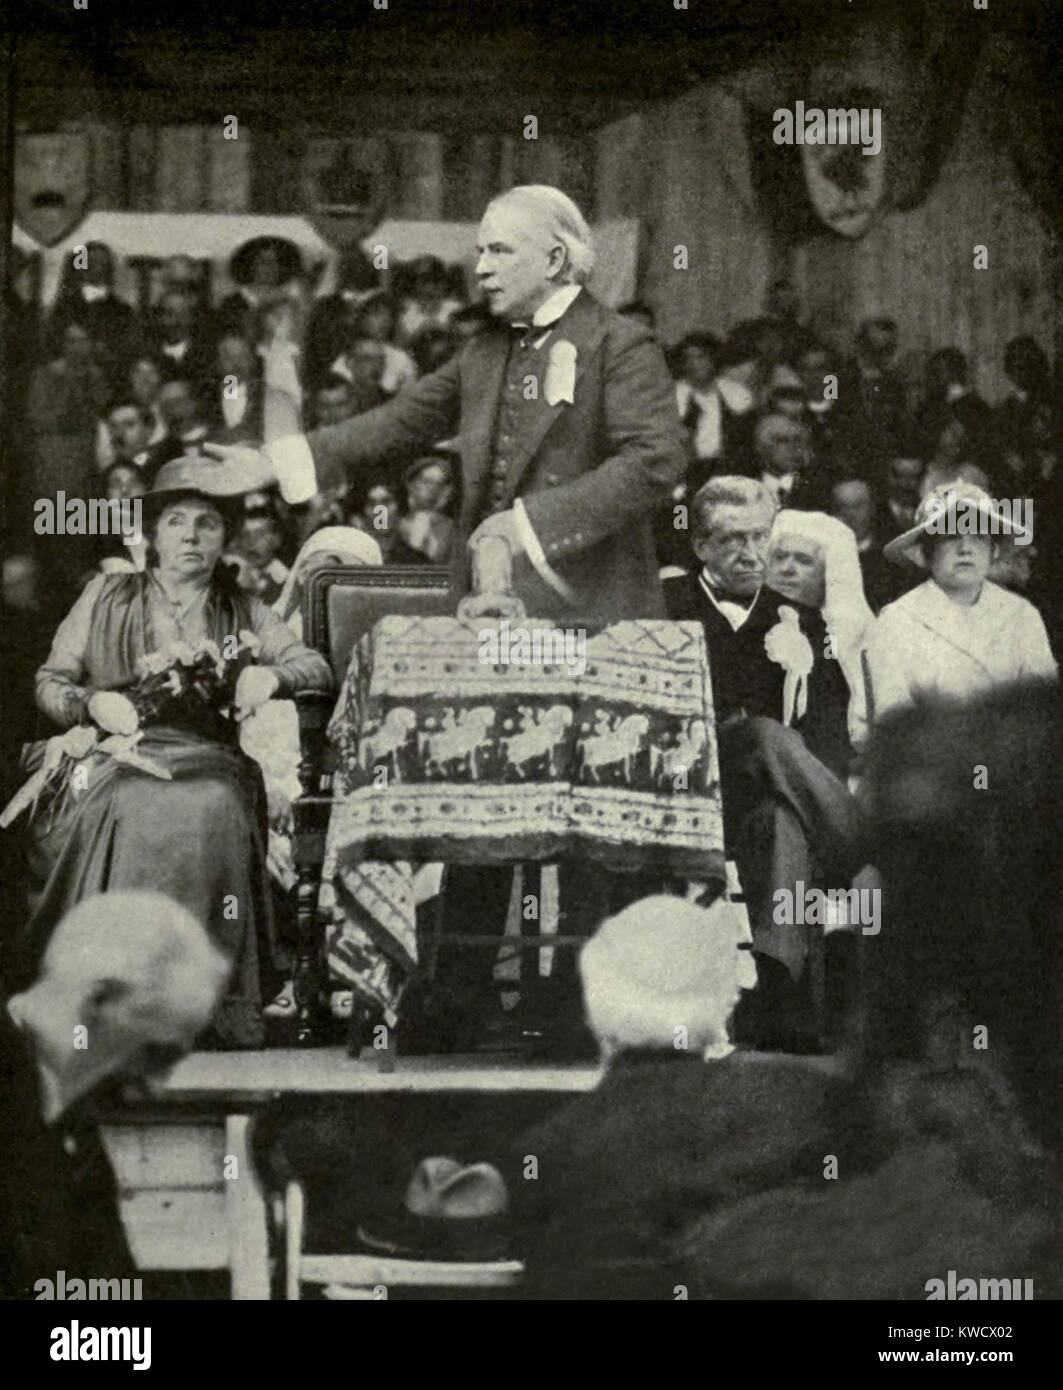 Liberal Prime Minister Lloyd George speaking at Welsh National Eisteddfod, Aug. 1917. A year into World War 1, he - Stock Image